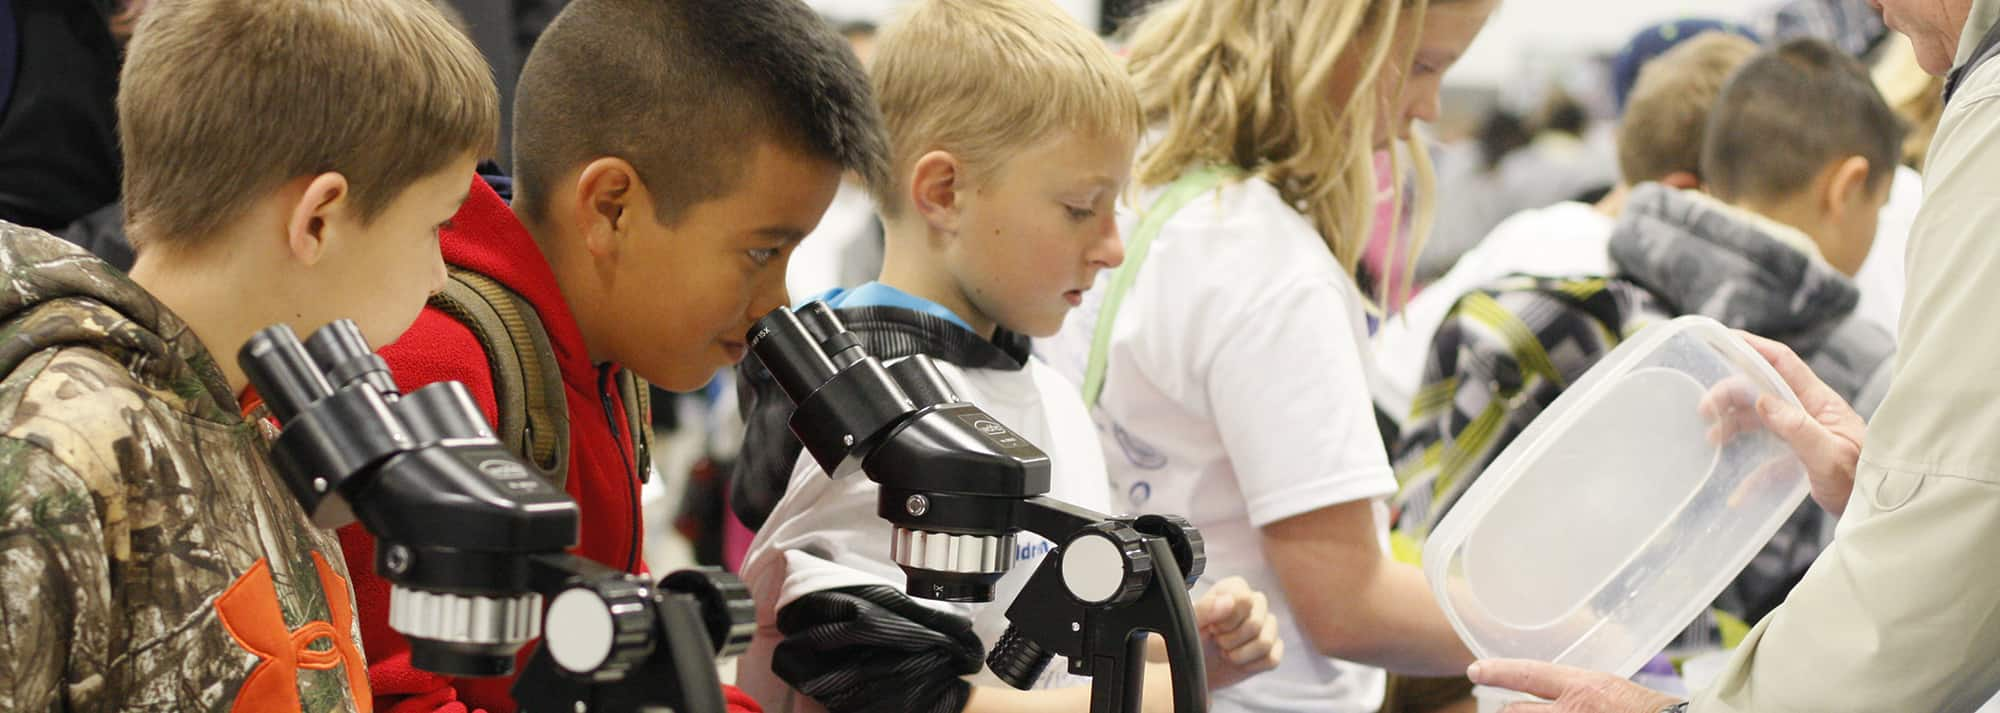 Kids with microscopes